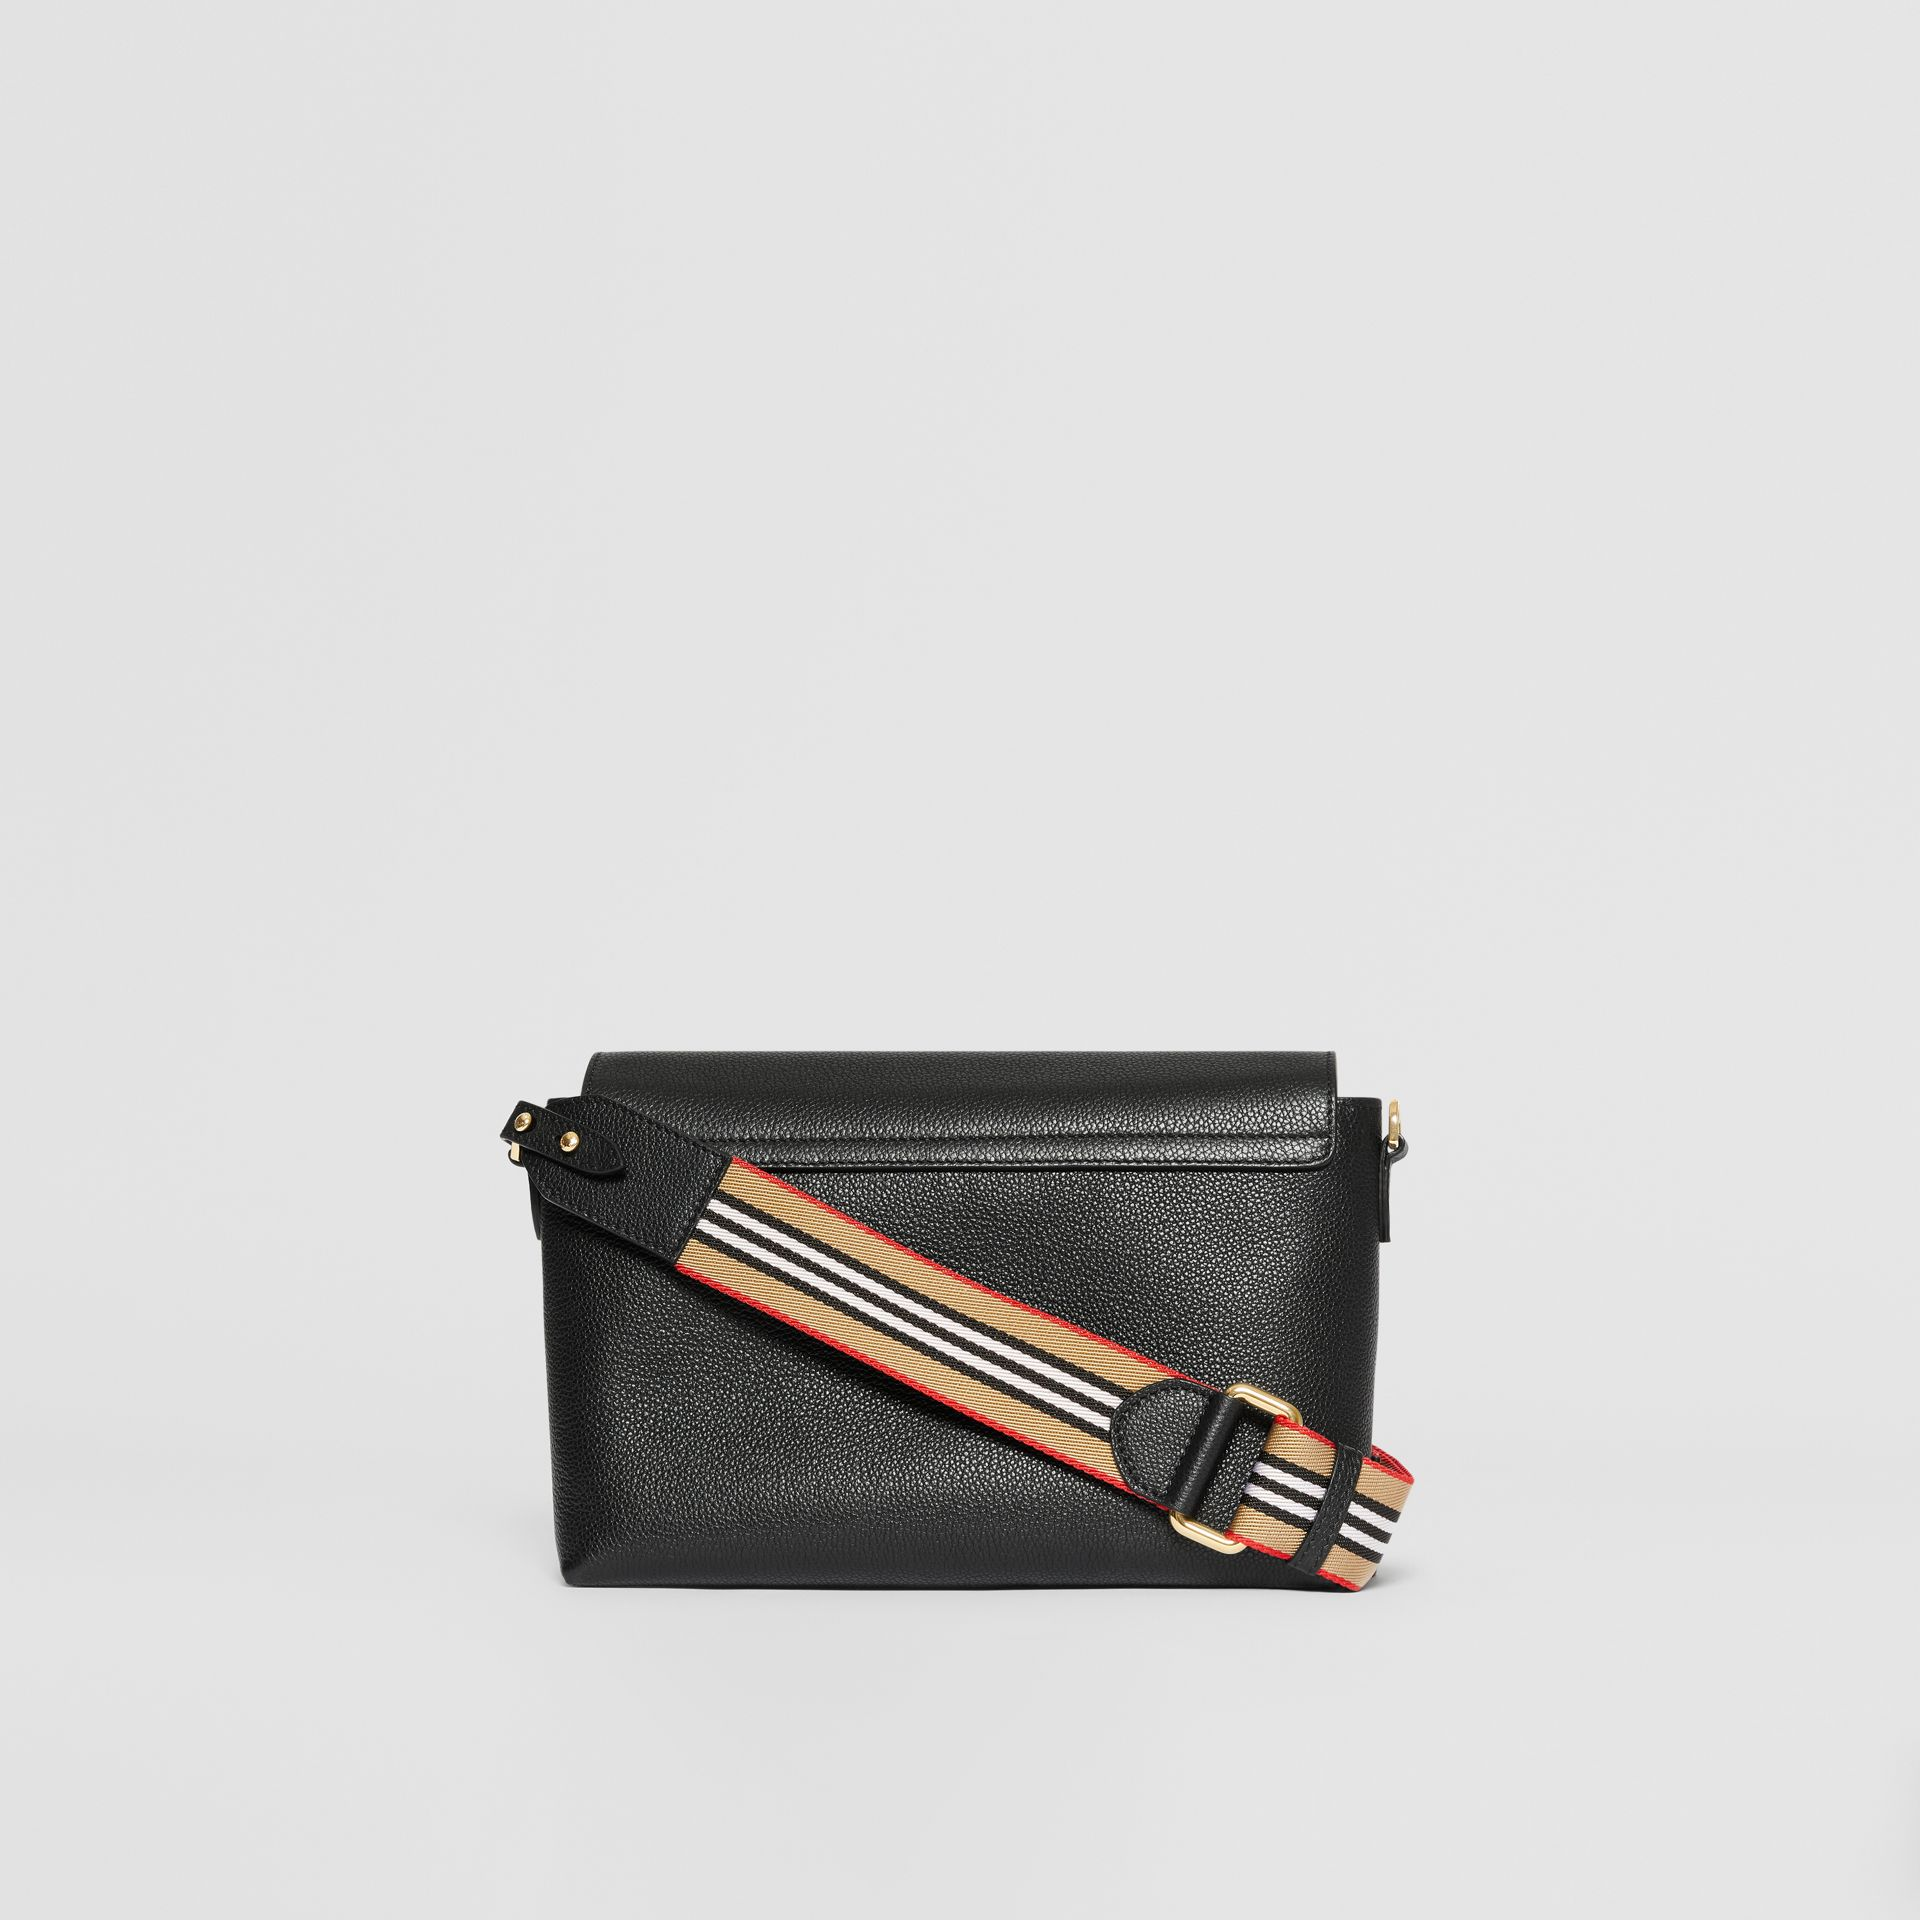 Grainy Leather Note Crossbody Bag in Black - Women | Burberry - gallery image 7